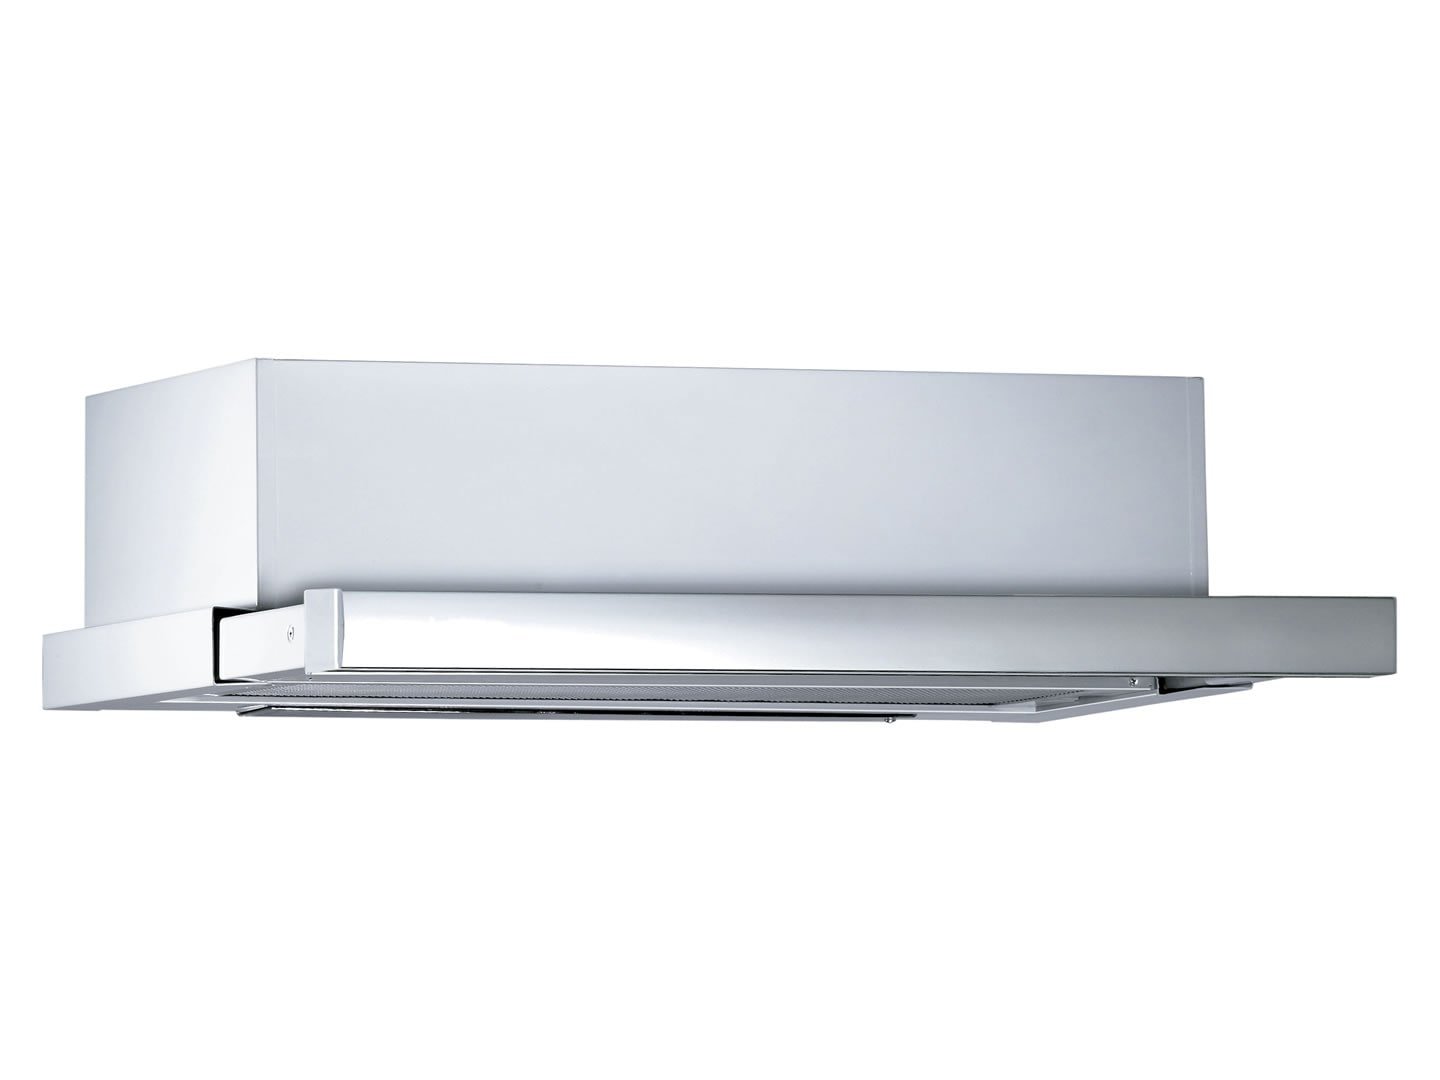 DeLonghi Slideout Rangehood 60cm Stainless Steel Front Recirculating TAFR60S